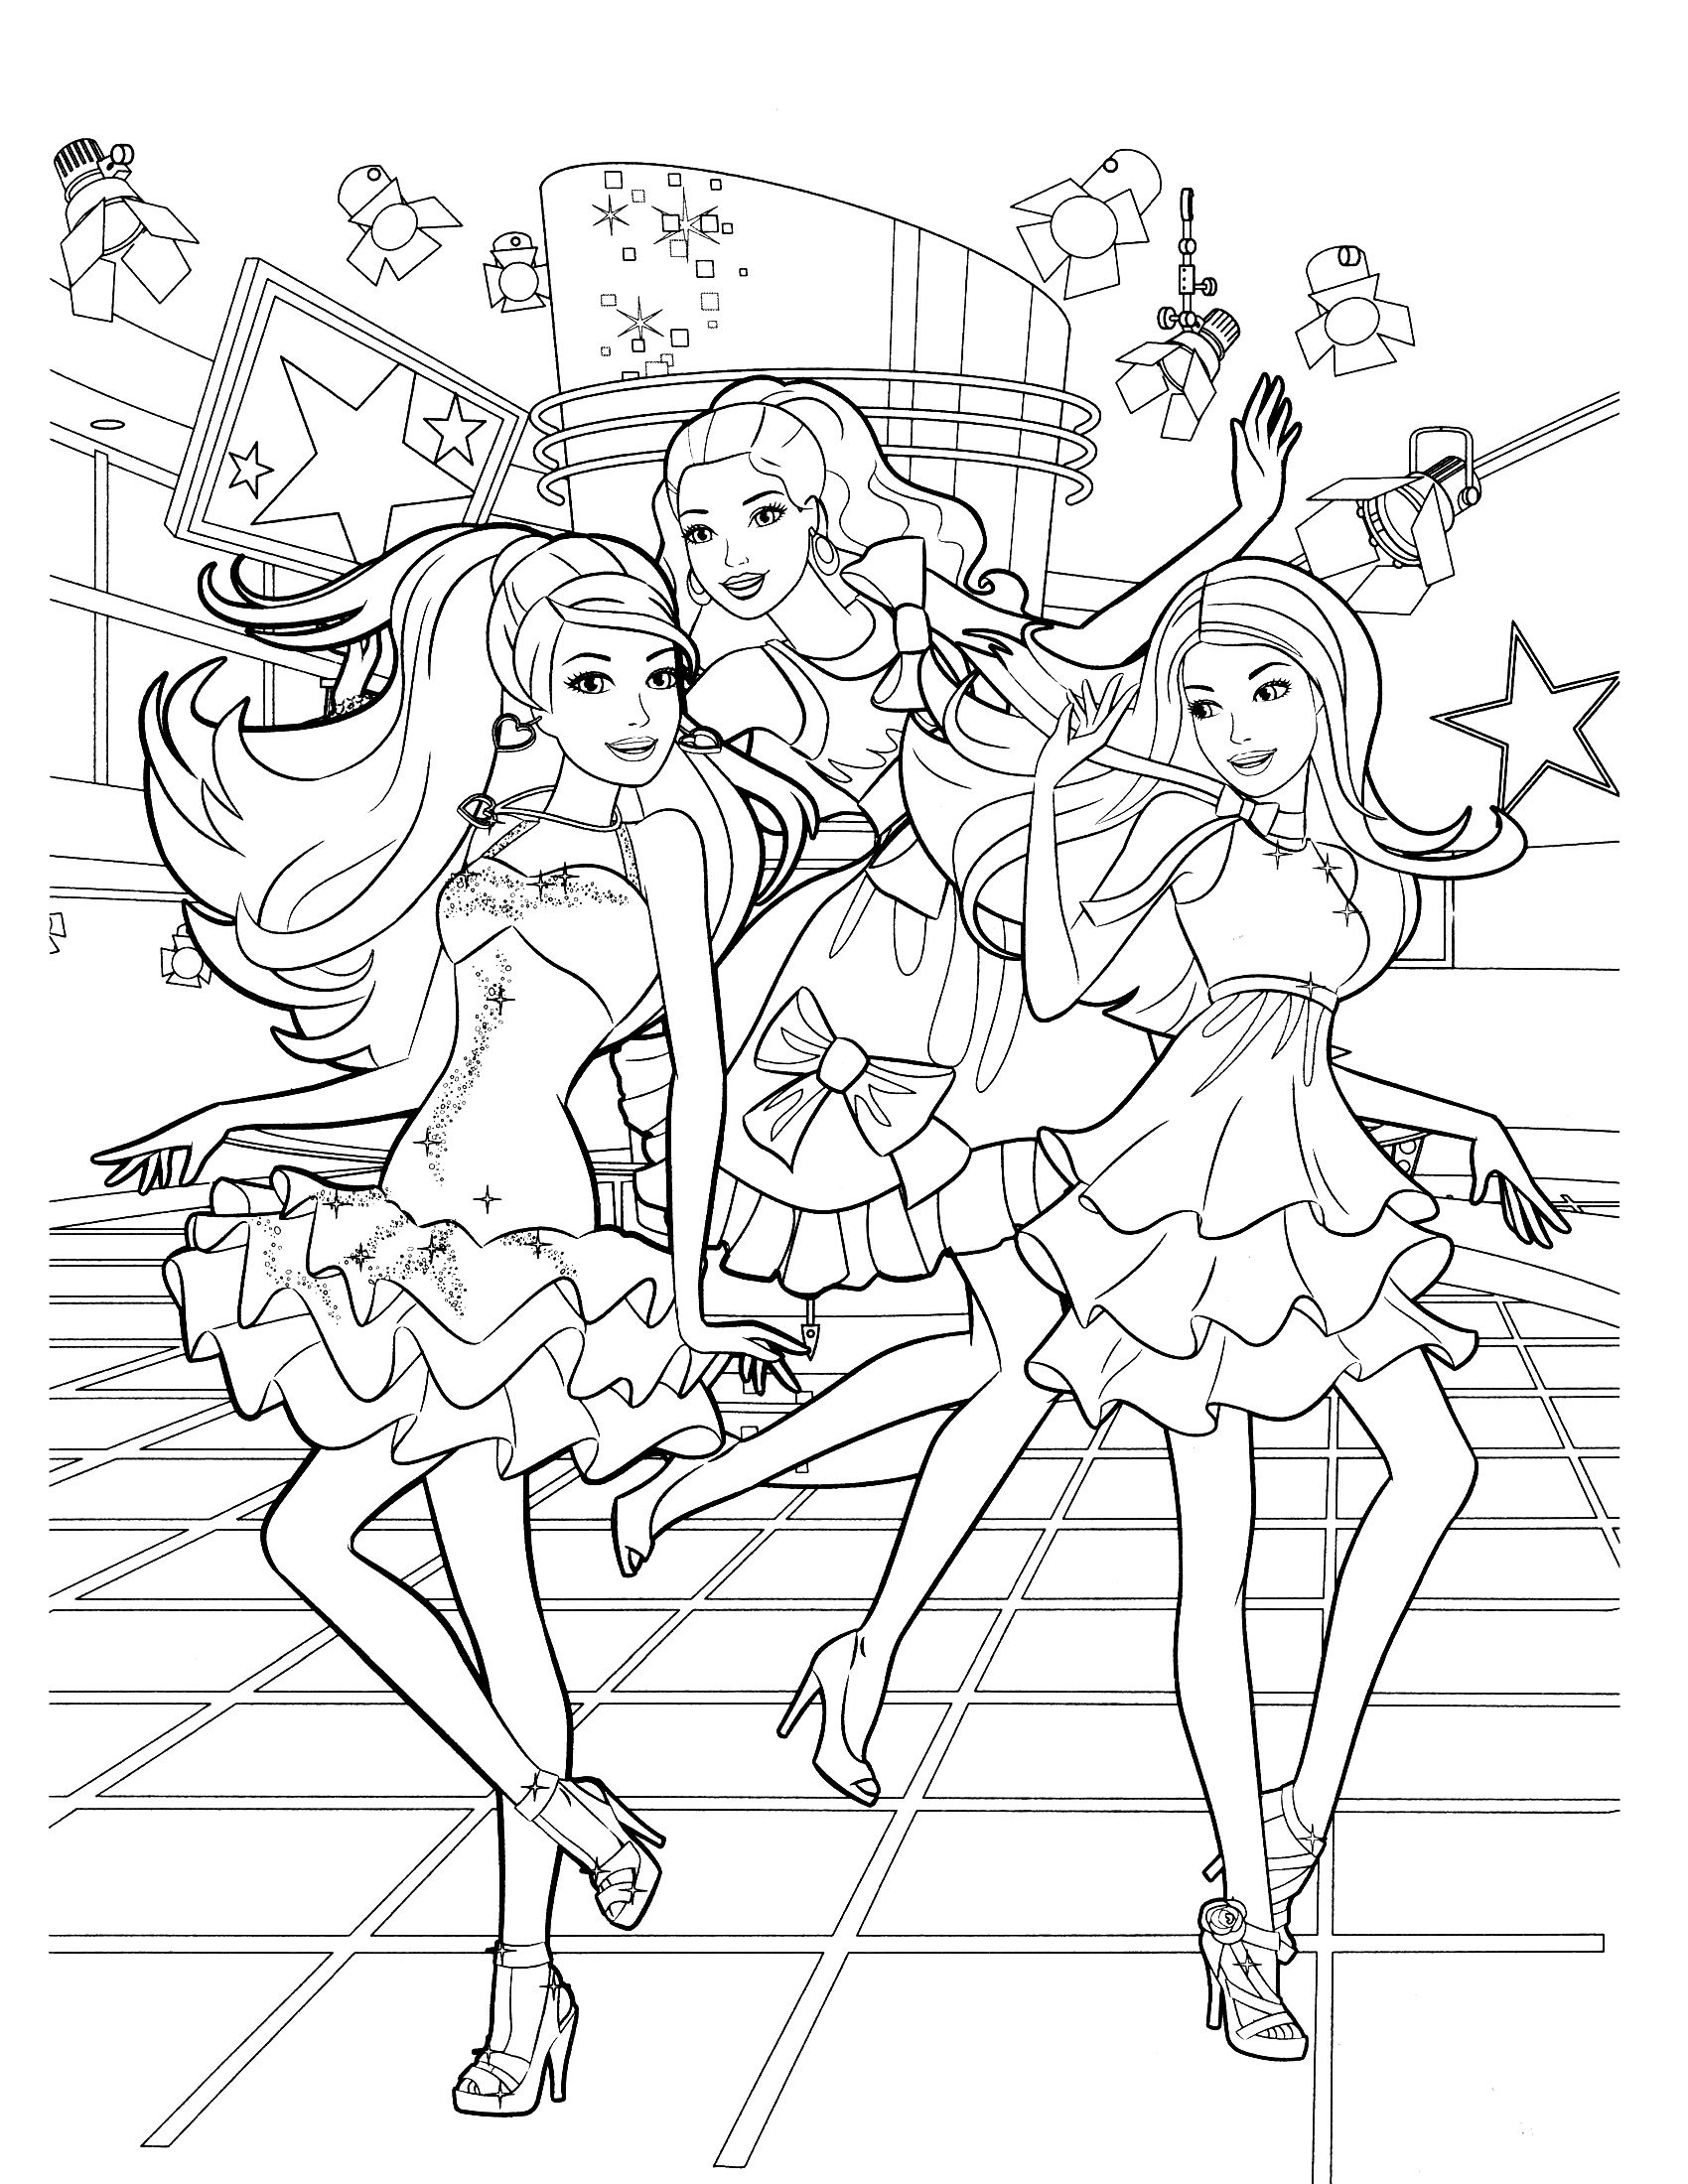 barbie doll colouring pictures barbie doll coloring pages at getcoloringscom free pictures barbie doll colouring